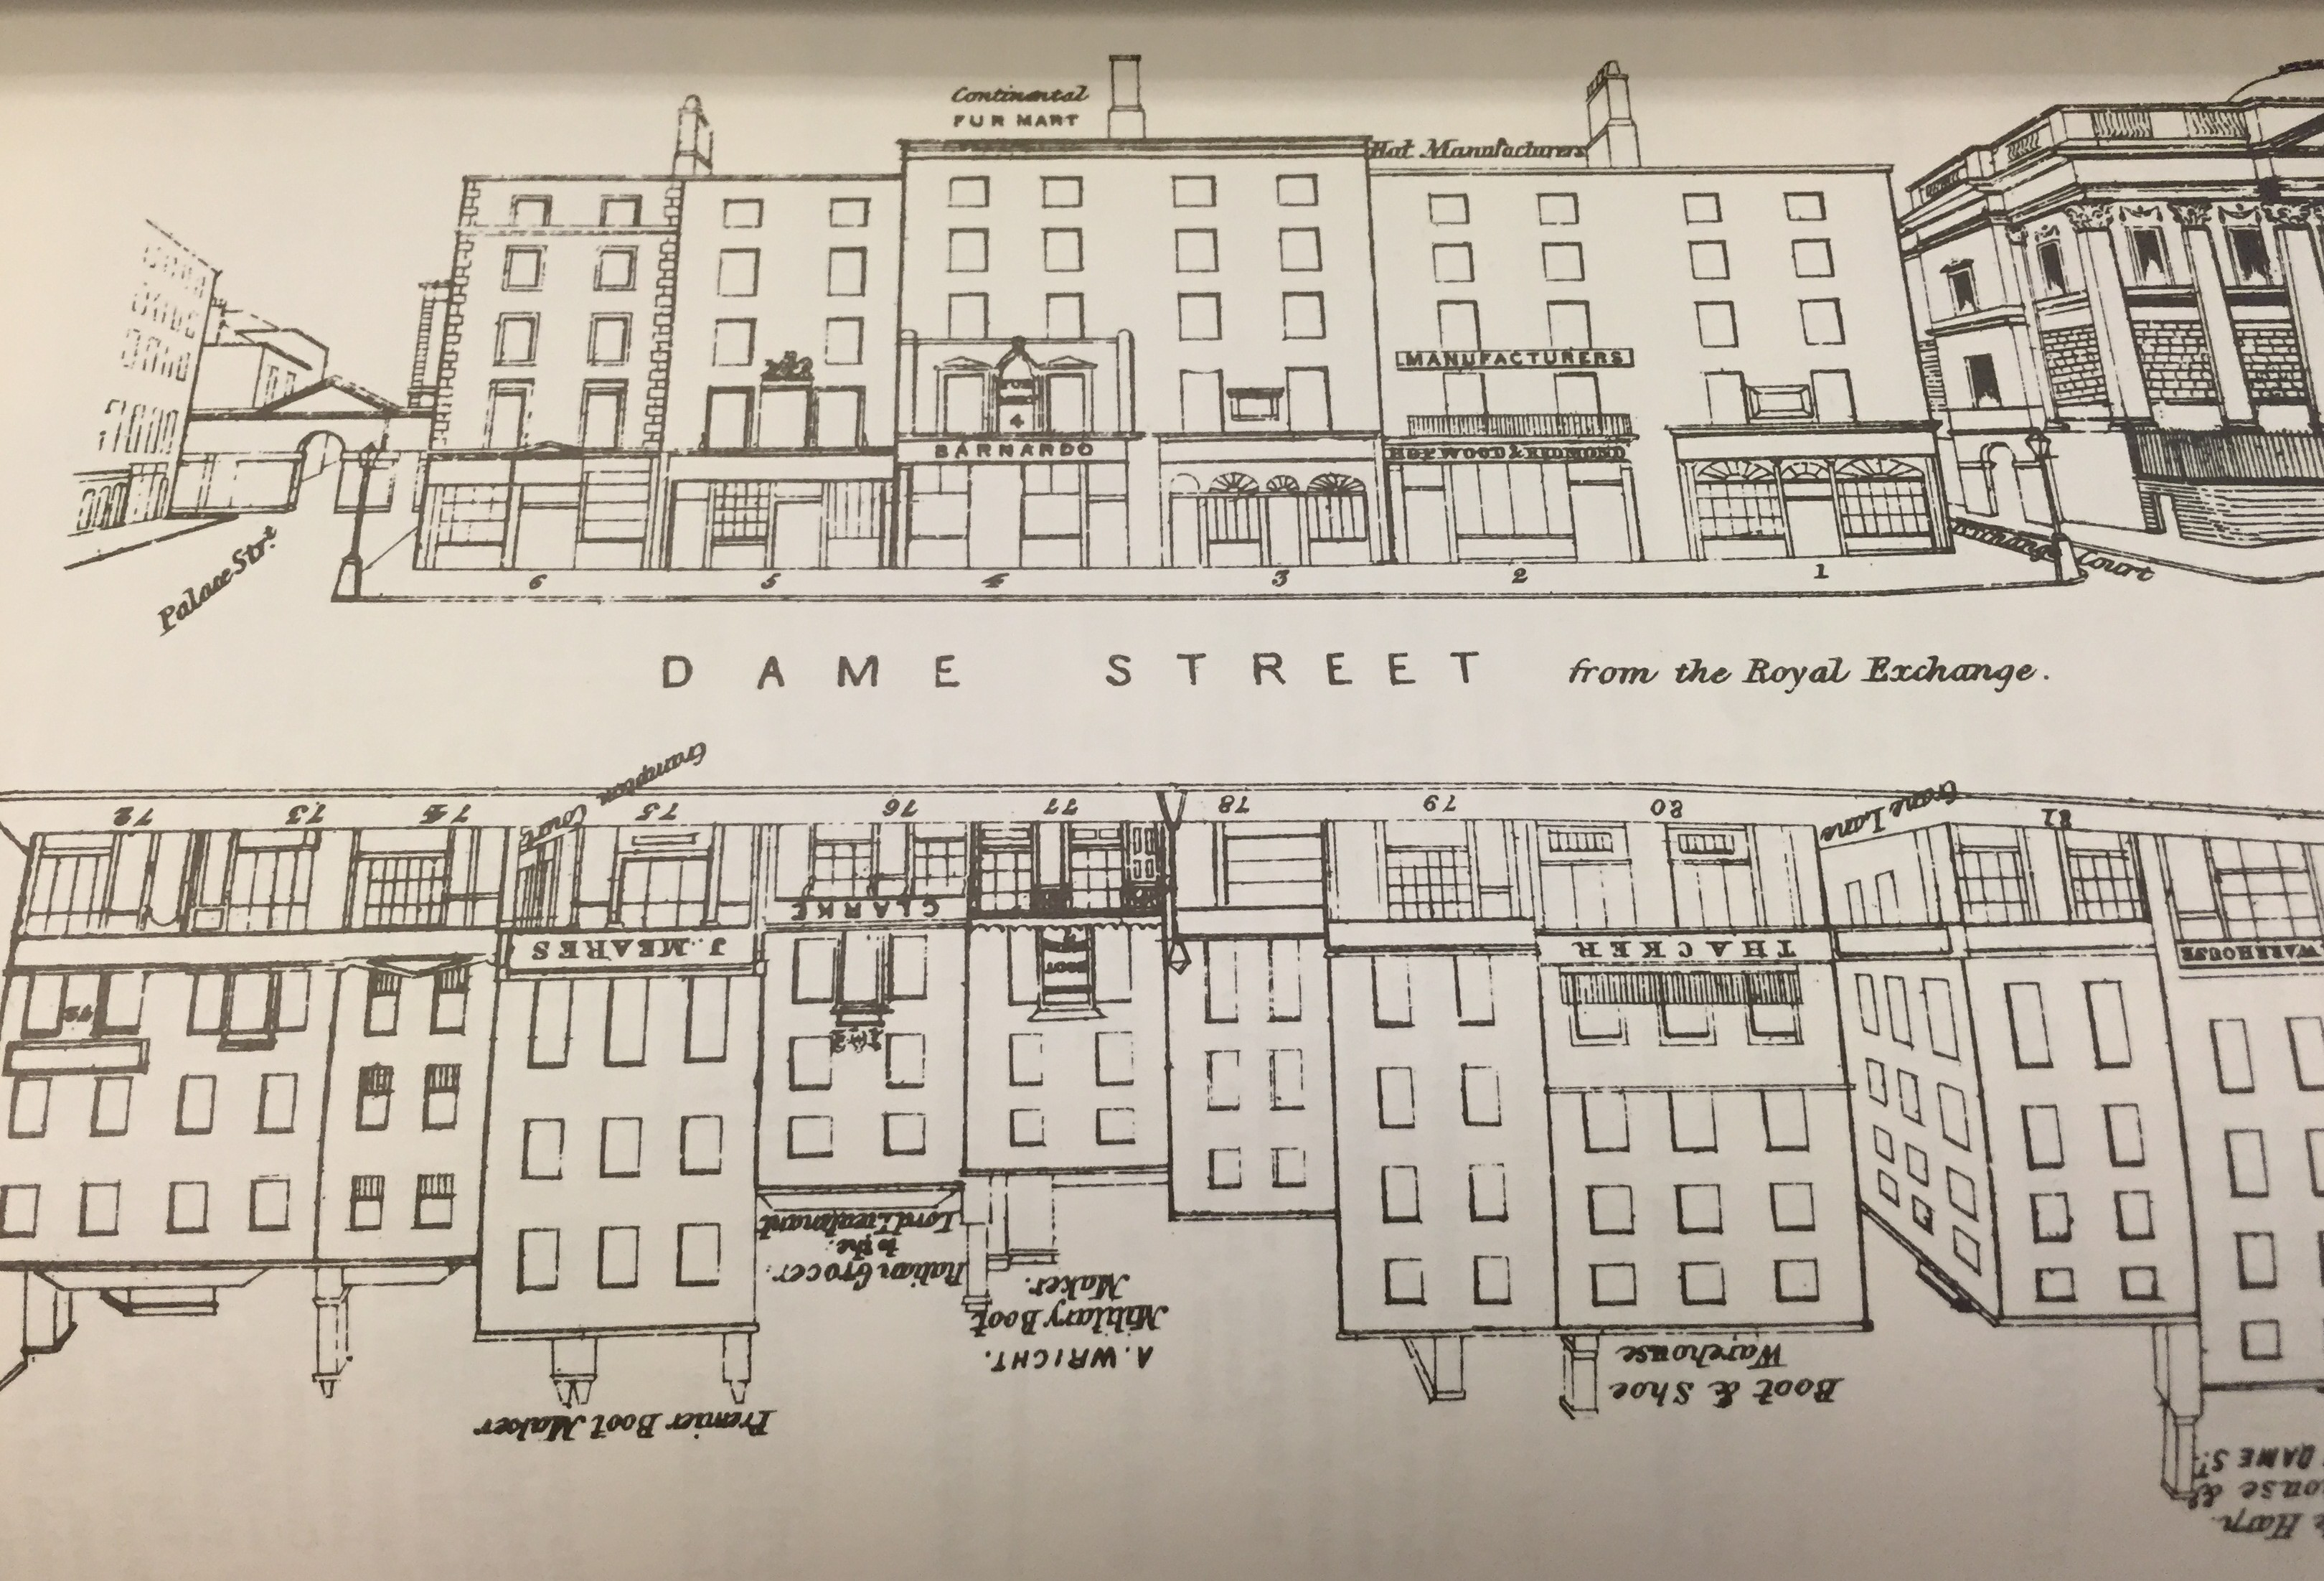 Diagram of Dame Street from Henry Shaw's The Dublin Pictorial Guide & Directory of 1850. Bewley's is located at 6 Dame Street, in the upper left of the image, at the intersection of Palace Street.